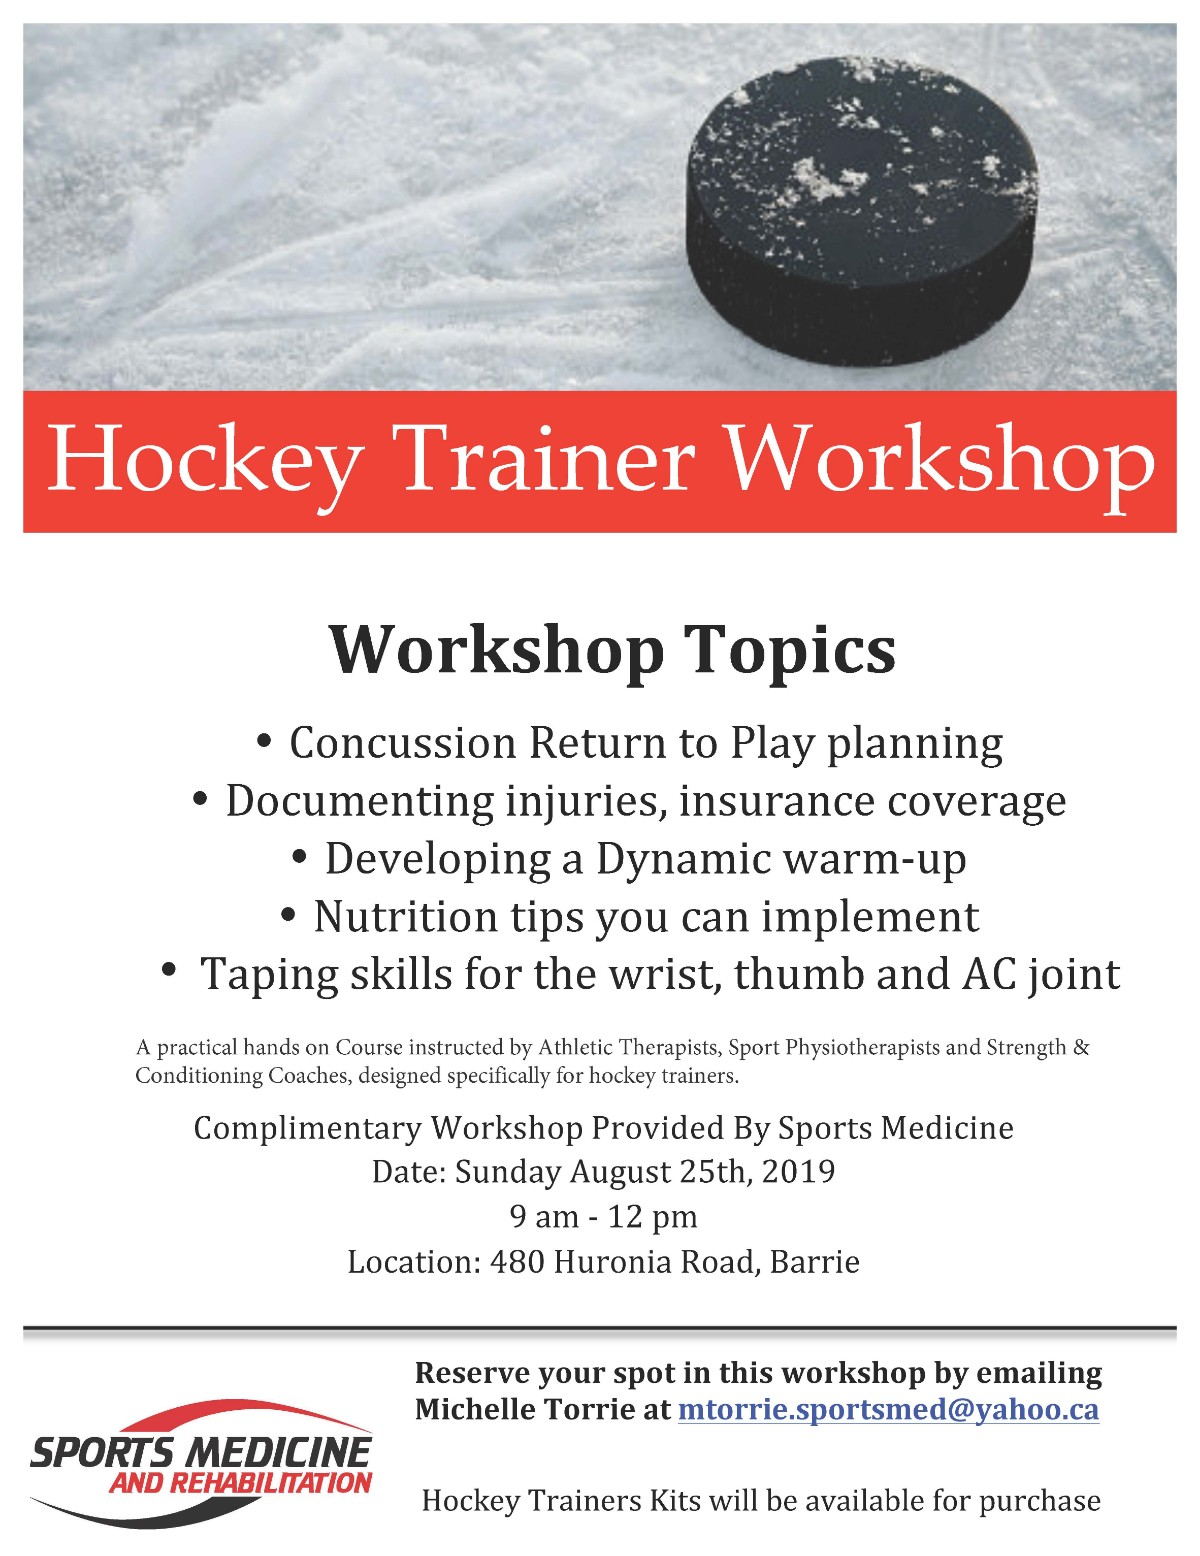 Trainer_workshop_flyer_2019_Barrie.jpg